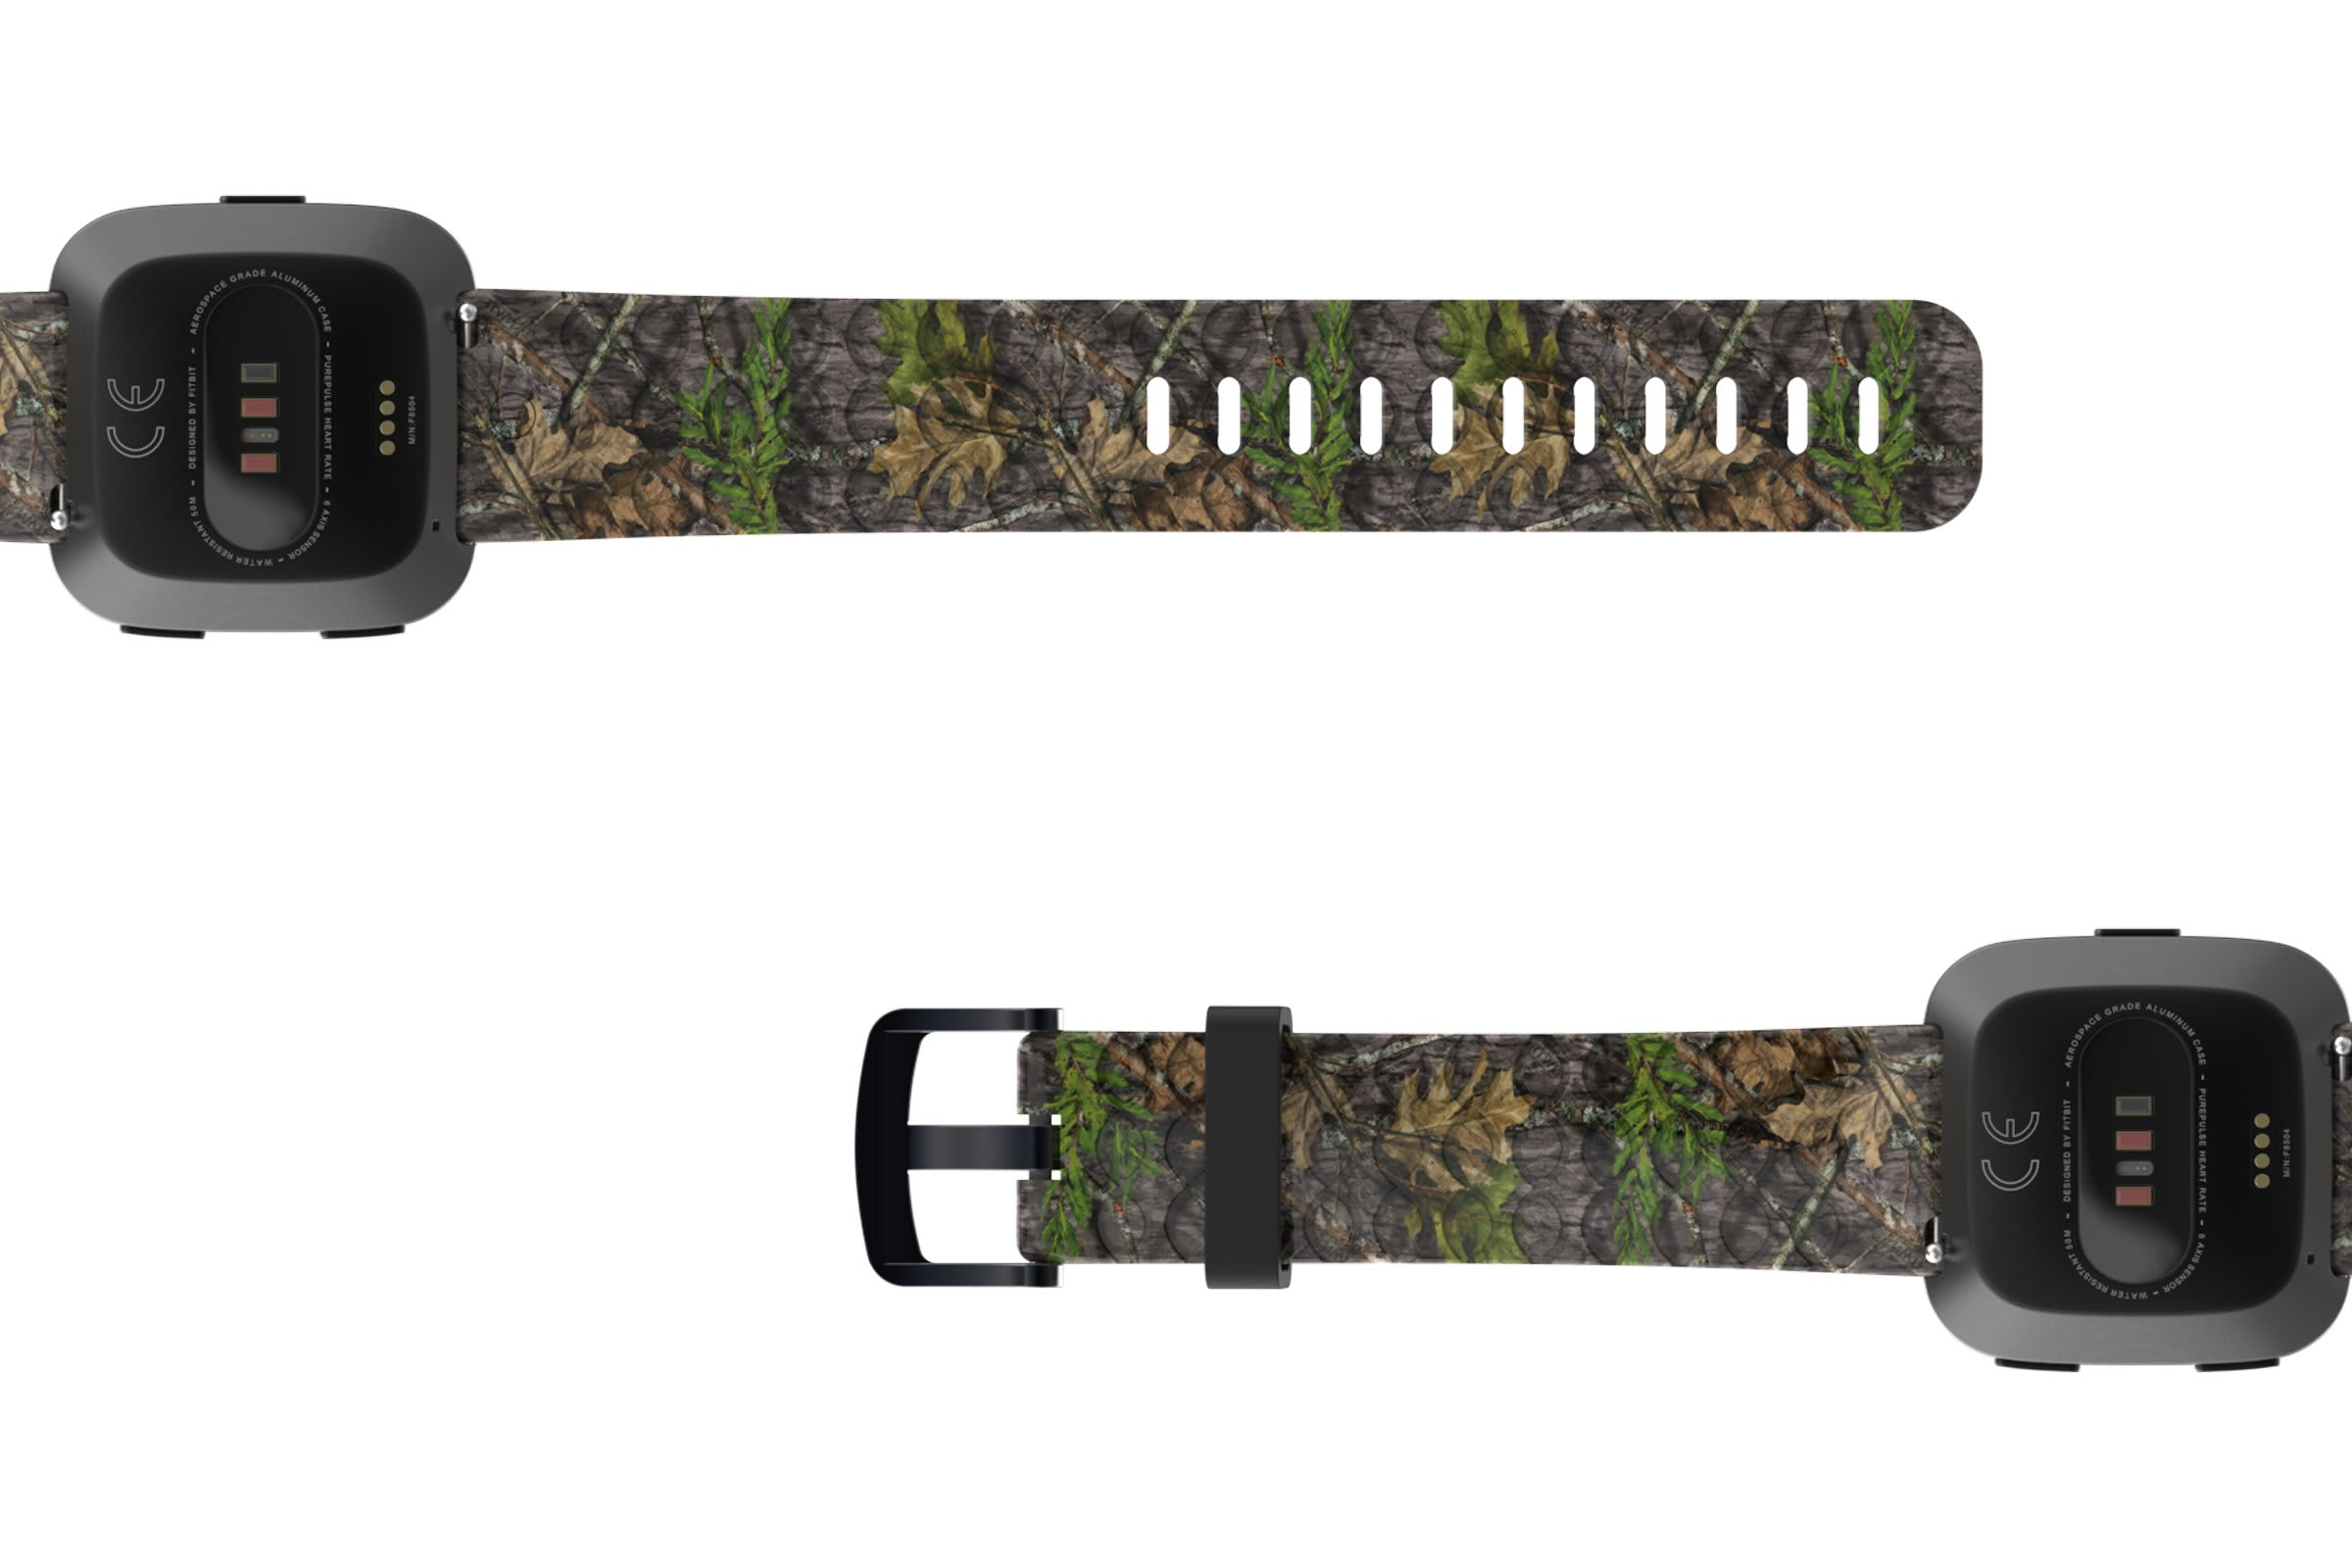 NWTF Mossy Oak Obsession Fitbit Versa   watch band viewed bottom up